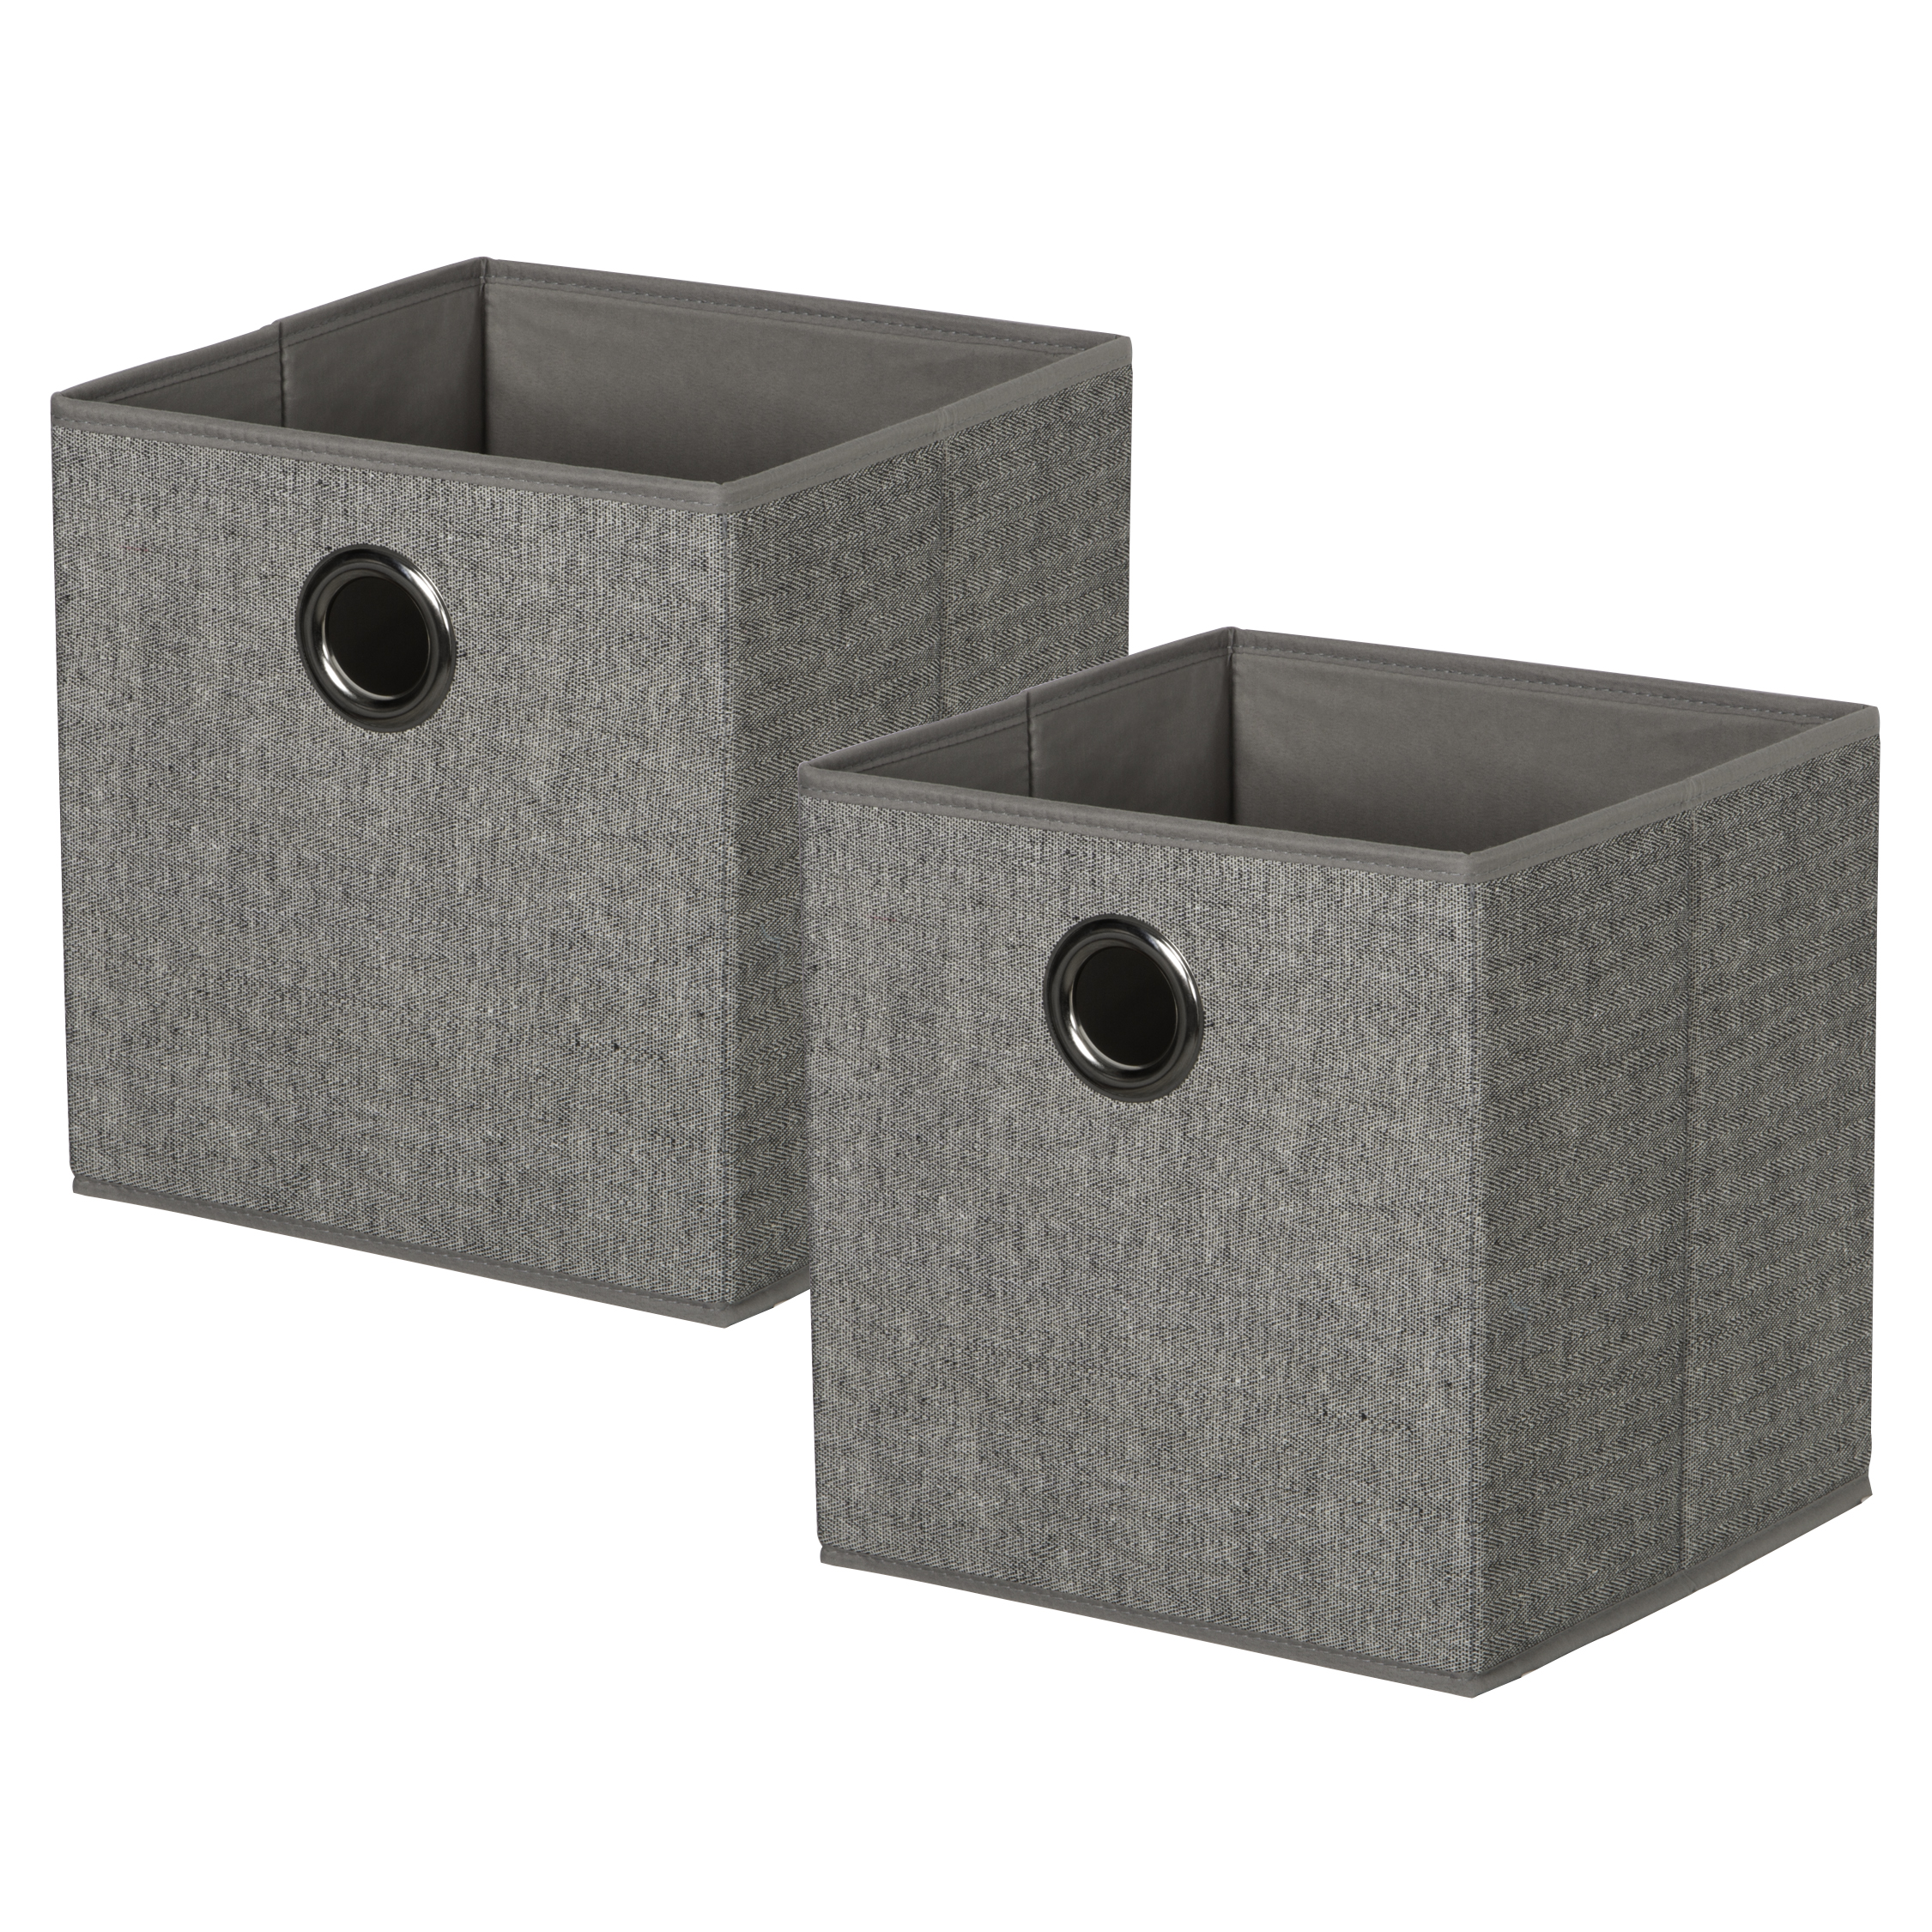 Set of 2 KD Cubes - GreyItem #86101022 - Arrow weave KD cubes with metal grommet handles. Fold flat when not in use.Dimensions: 11